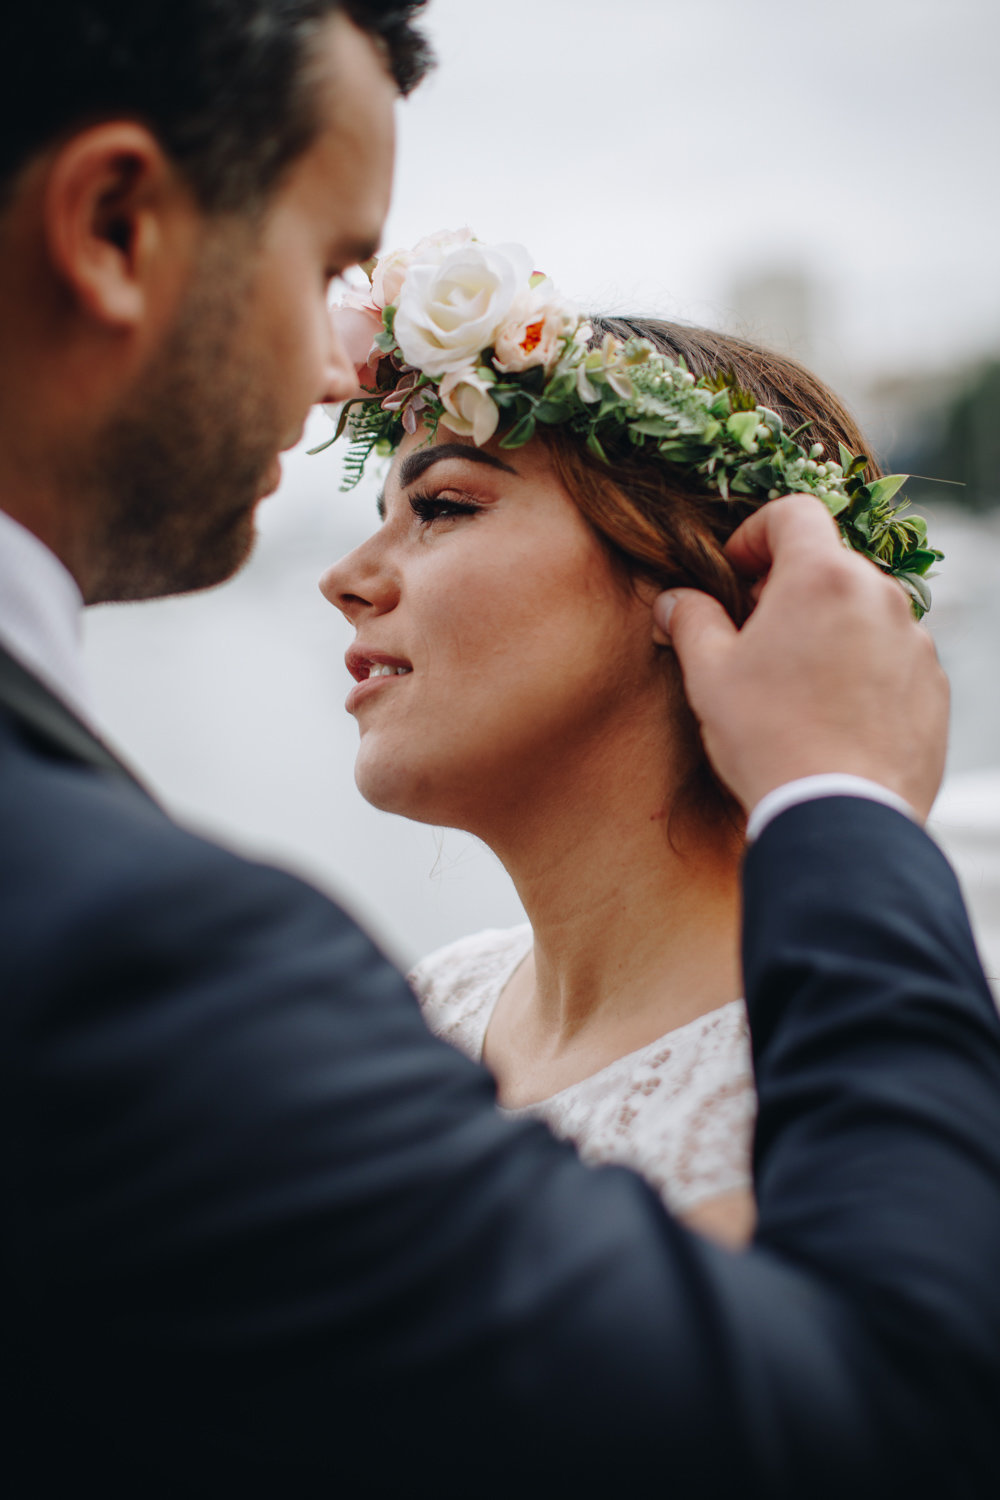 Sydney_elopement_Kirribilli_wedding-1-19